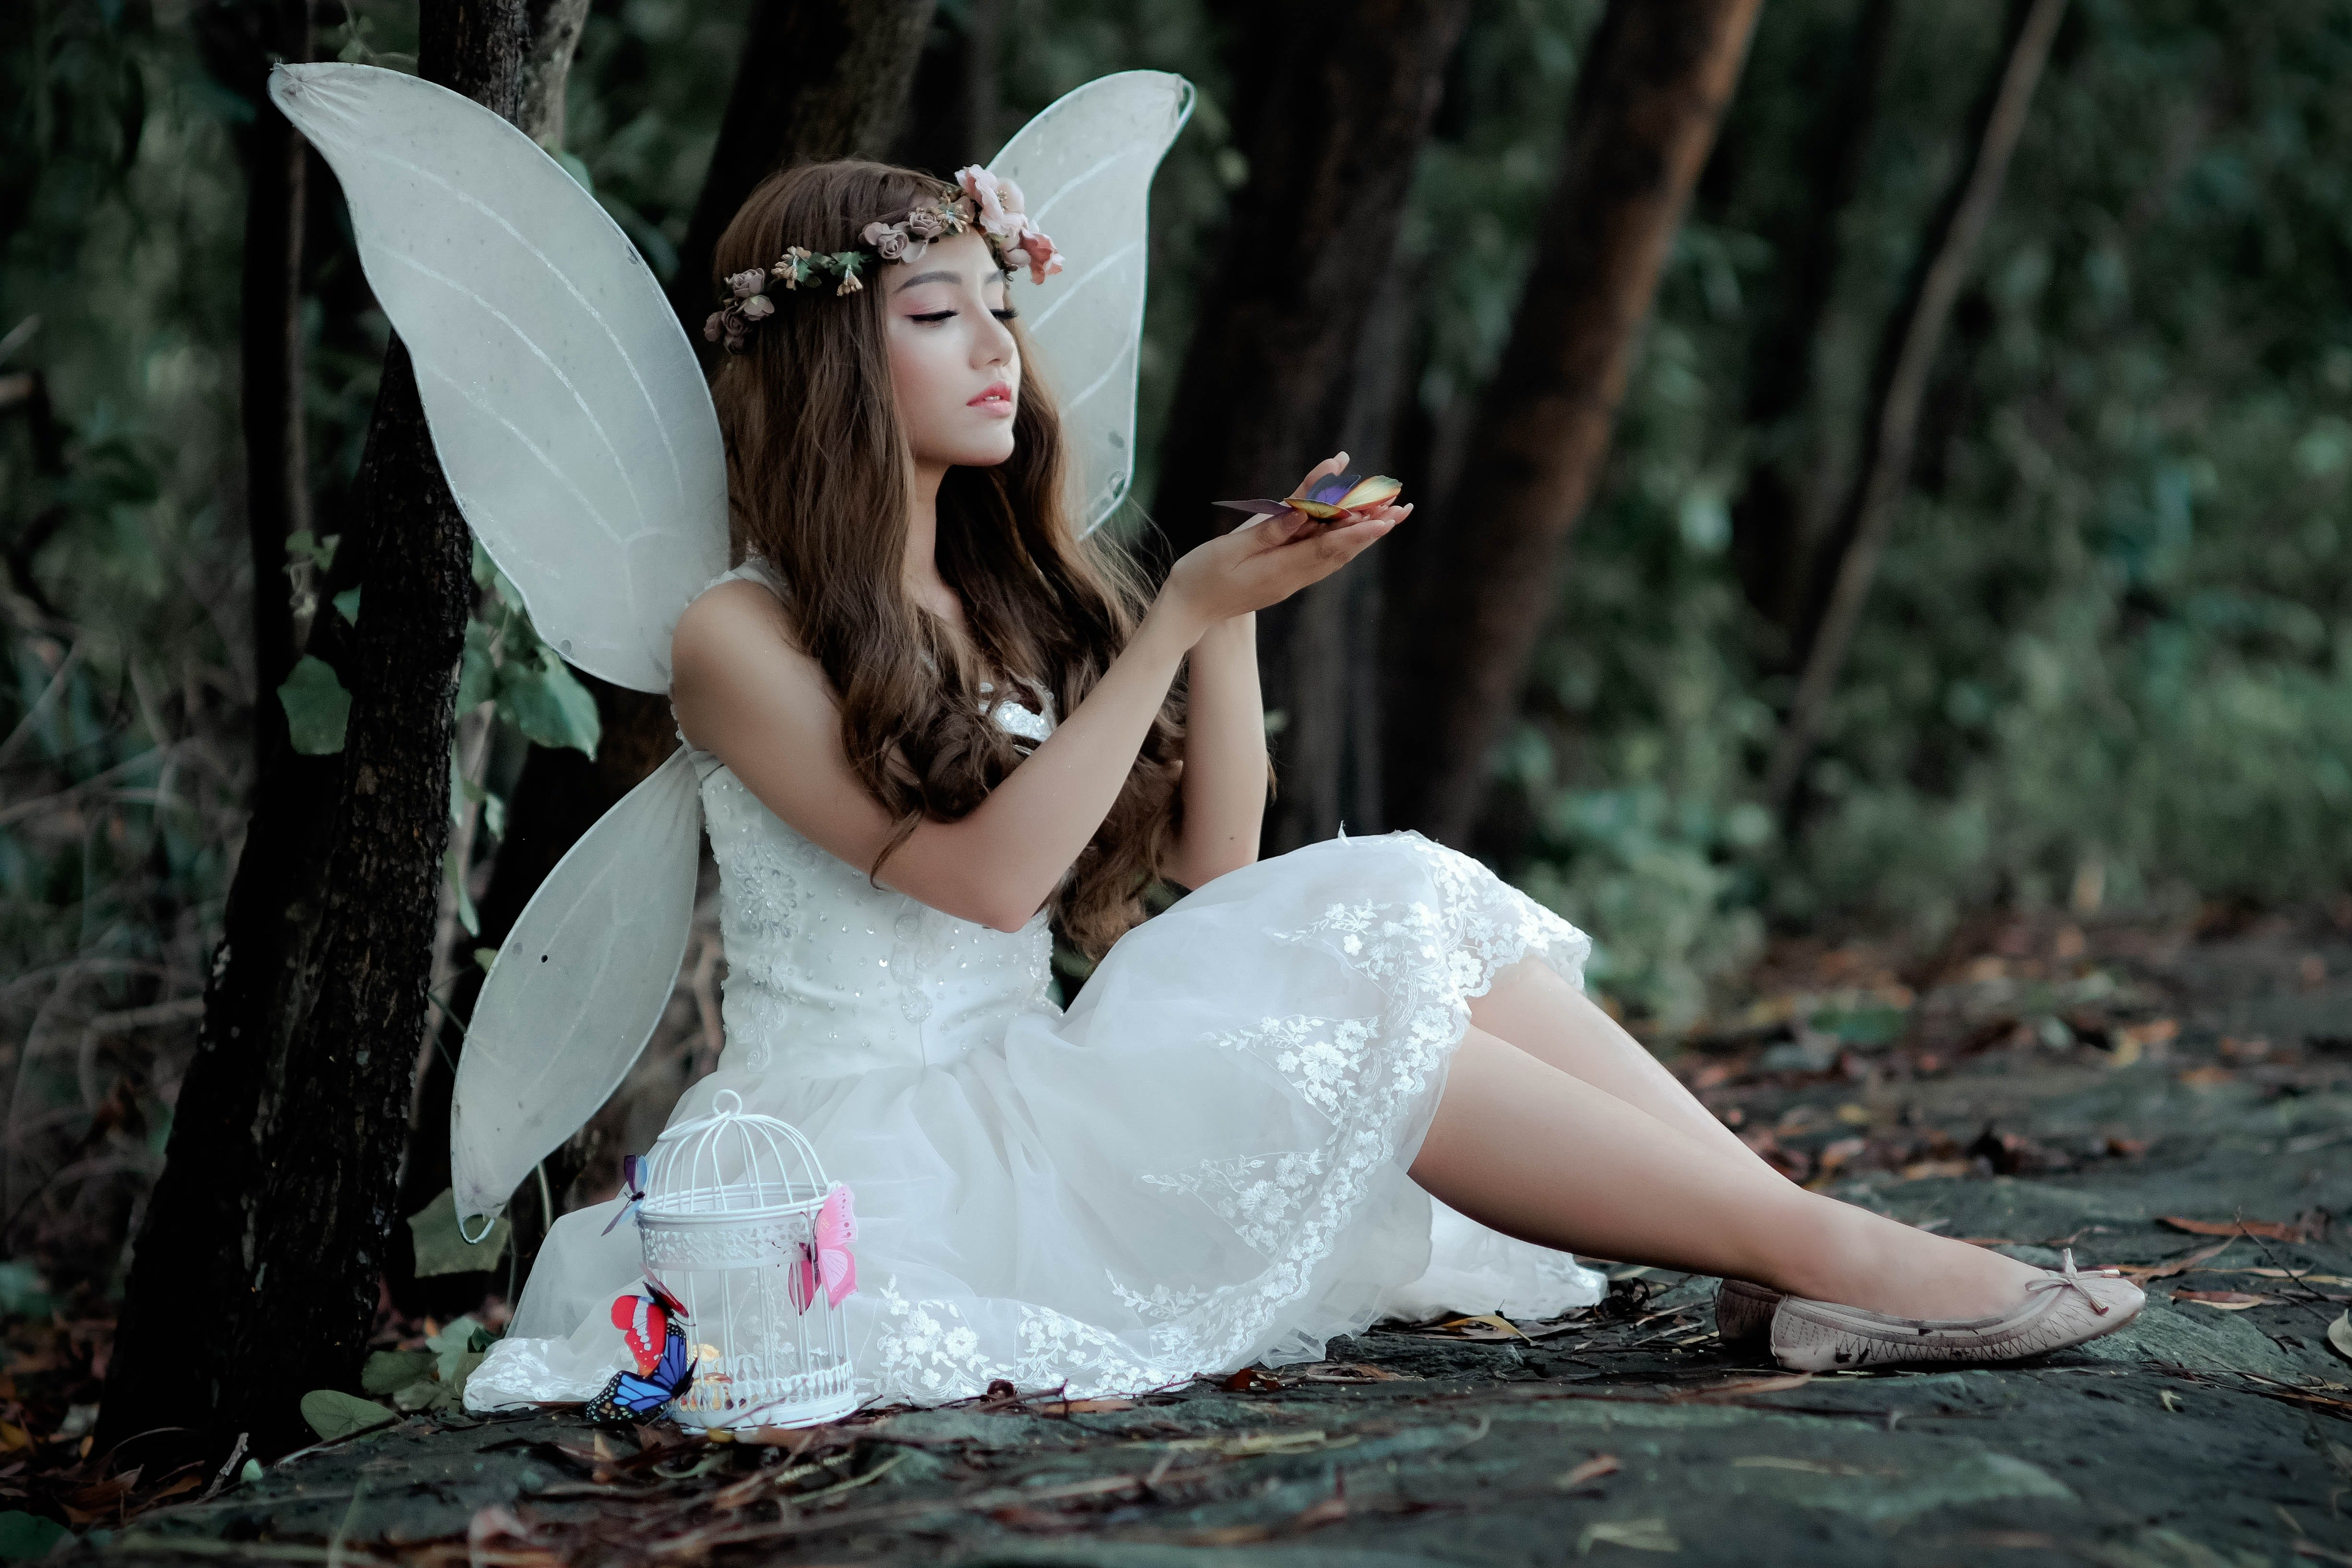 Pictured - A woman wearing a fairy costume | Source: Pexels